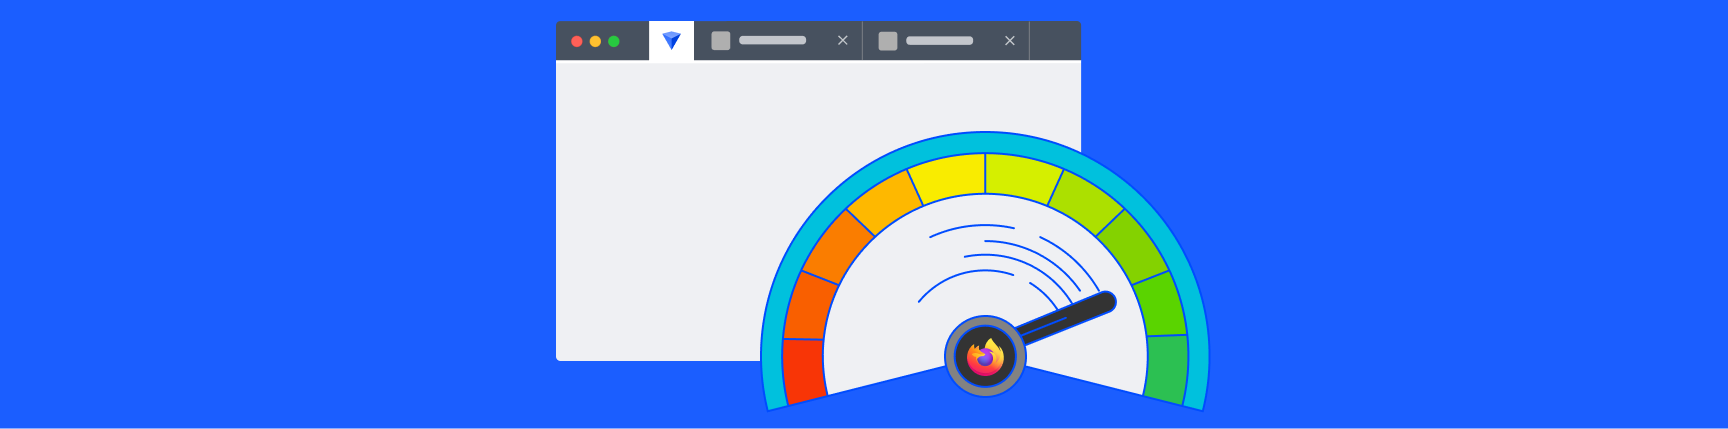 Firefox logo inside a meter showing memory usage